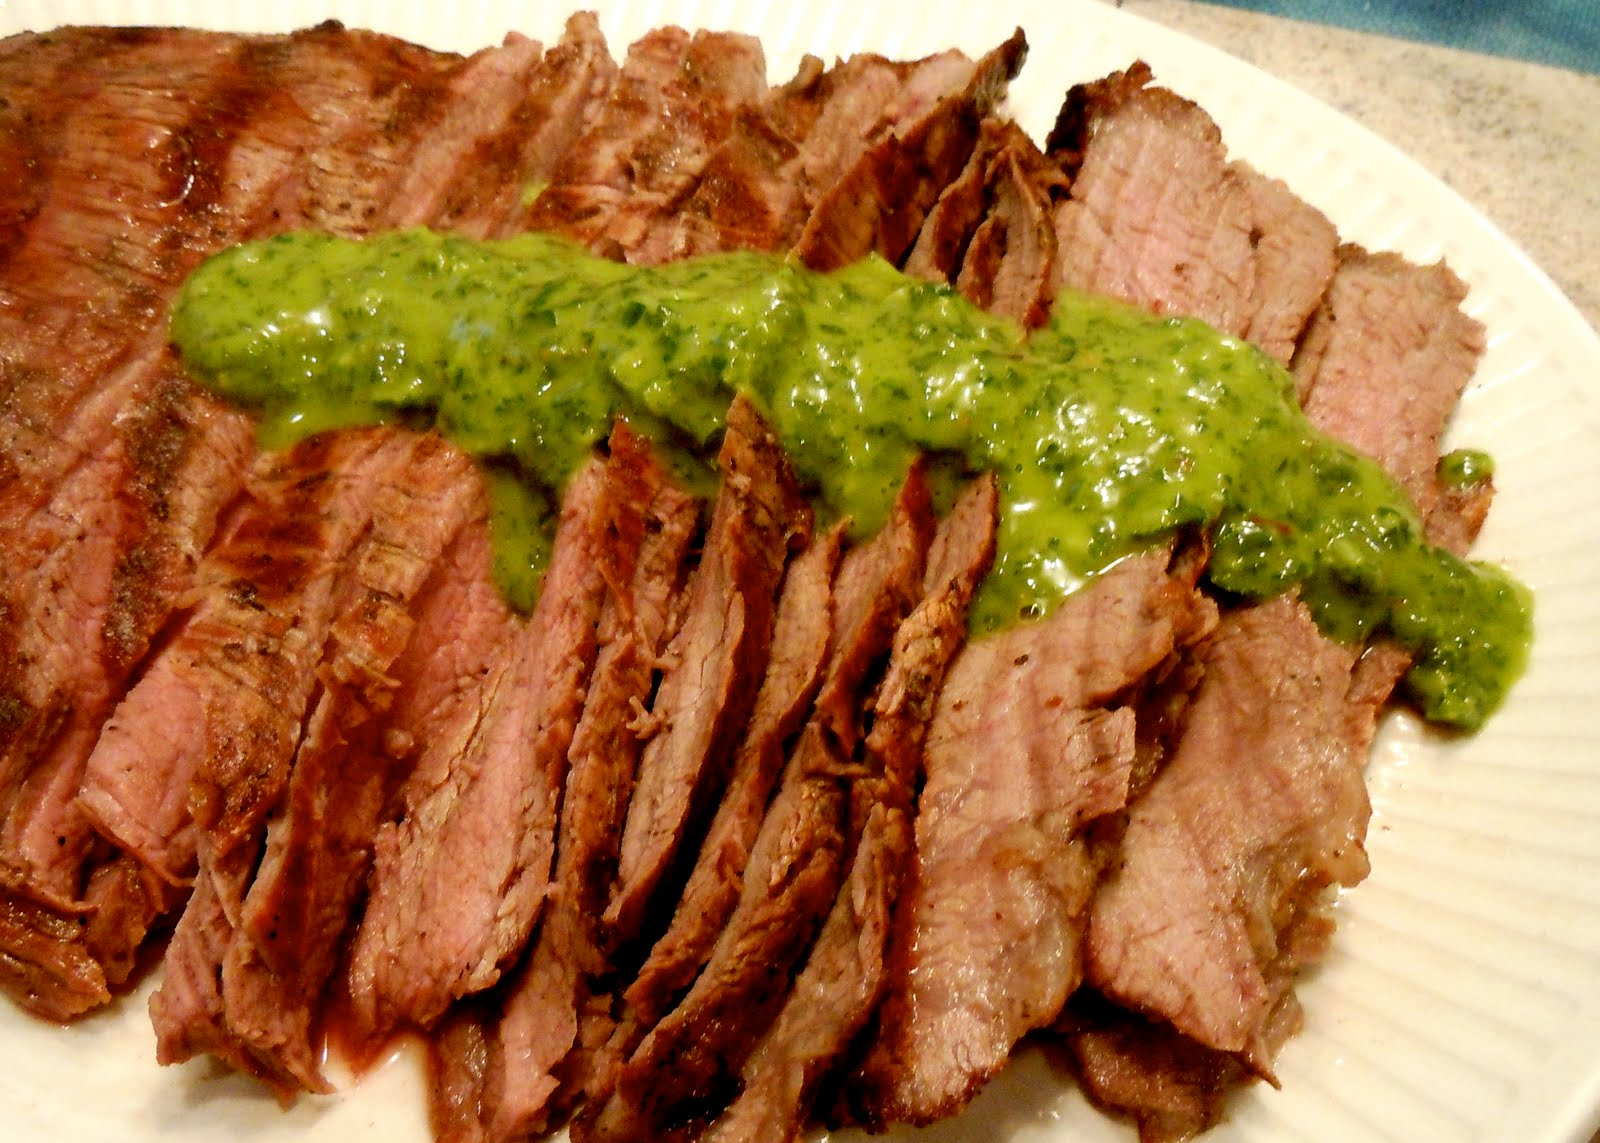 Cook. Eat. Enjoy. Repeat.: Beer Marinated Flank Steak with Chimichurri